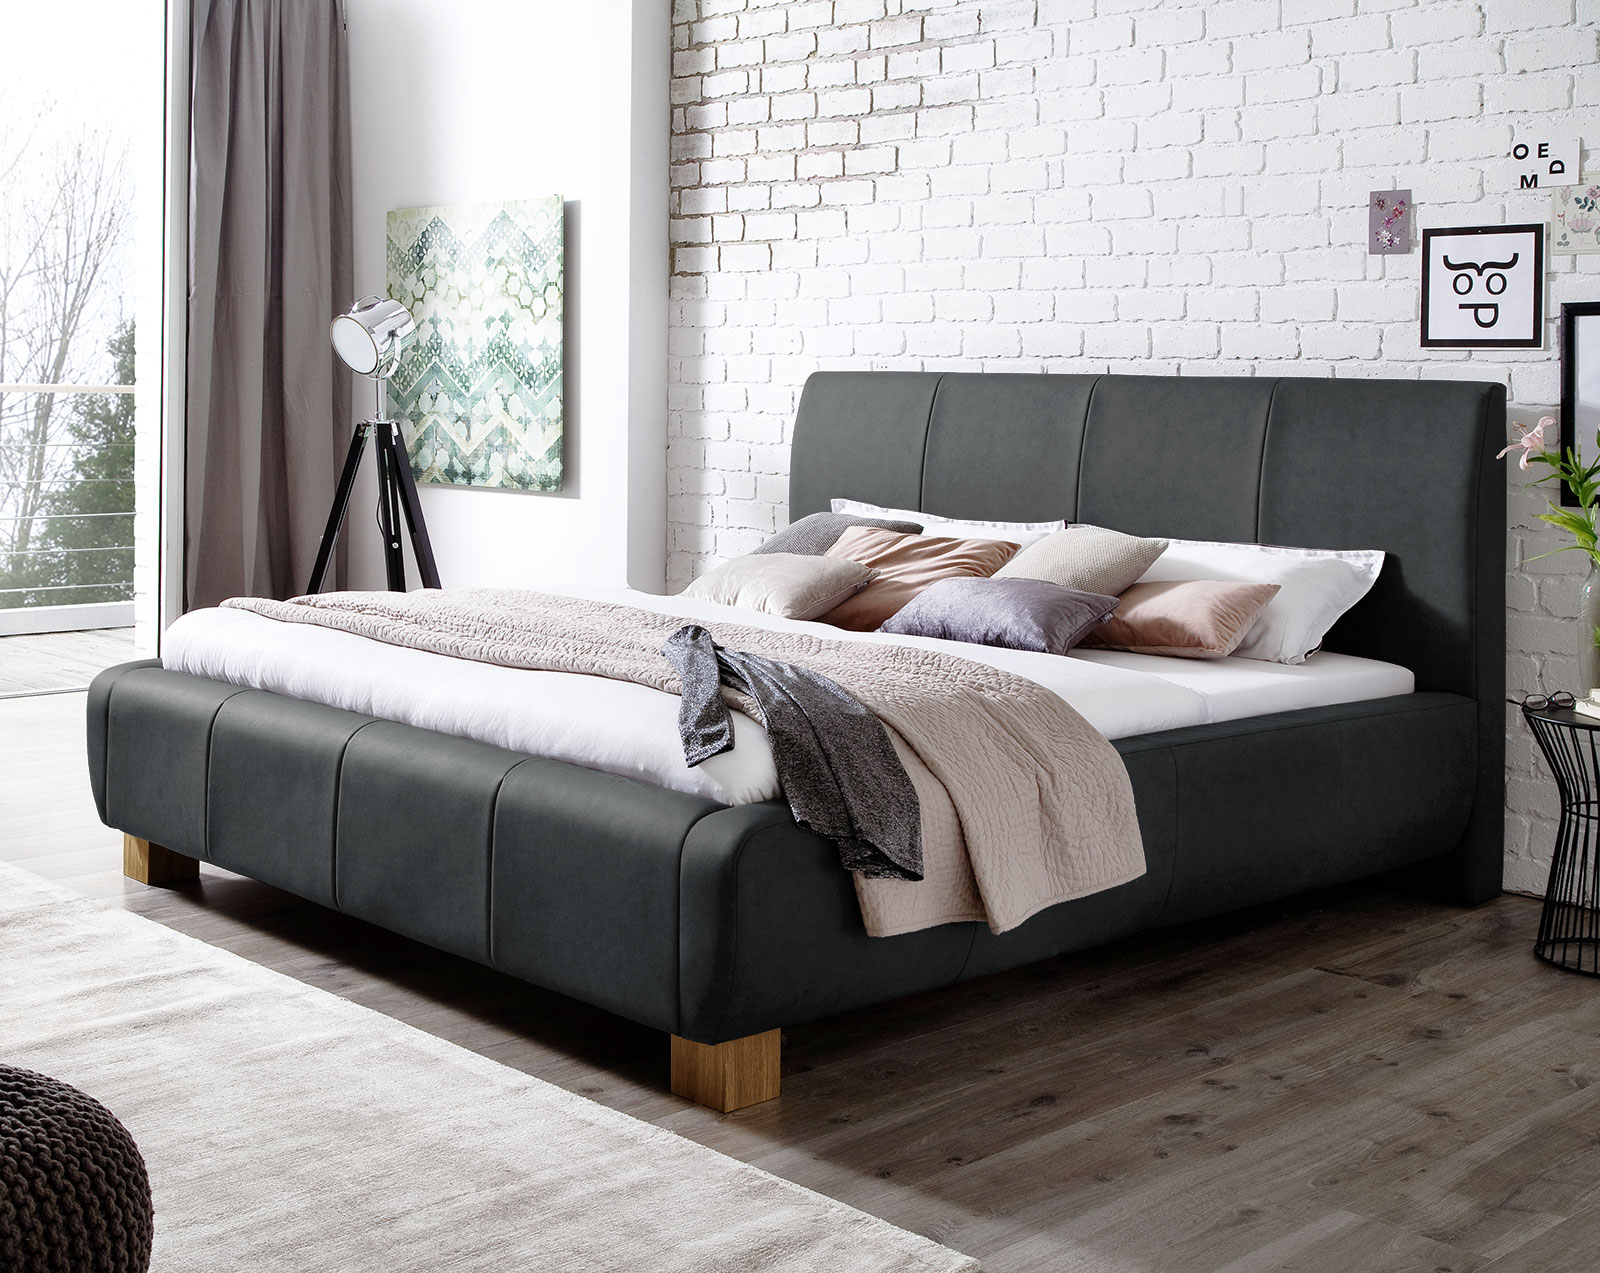 sch ne kopfteil bett polster fotos erindzain. Black Bedroom Furniture Sets. Home Design Ideas